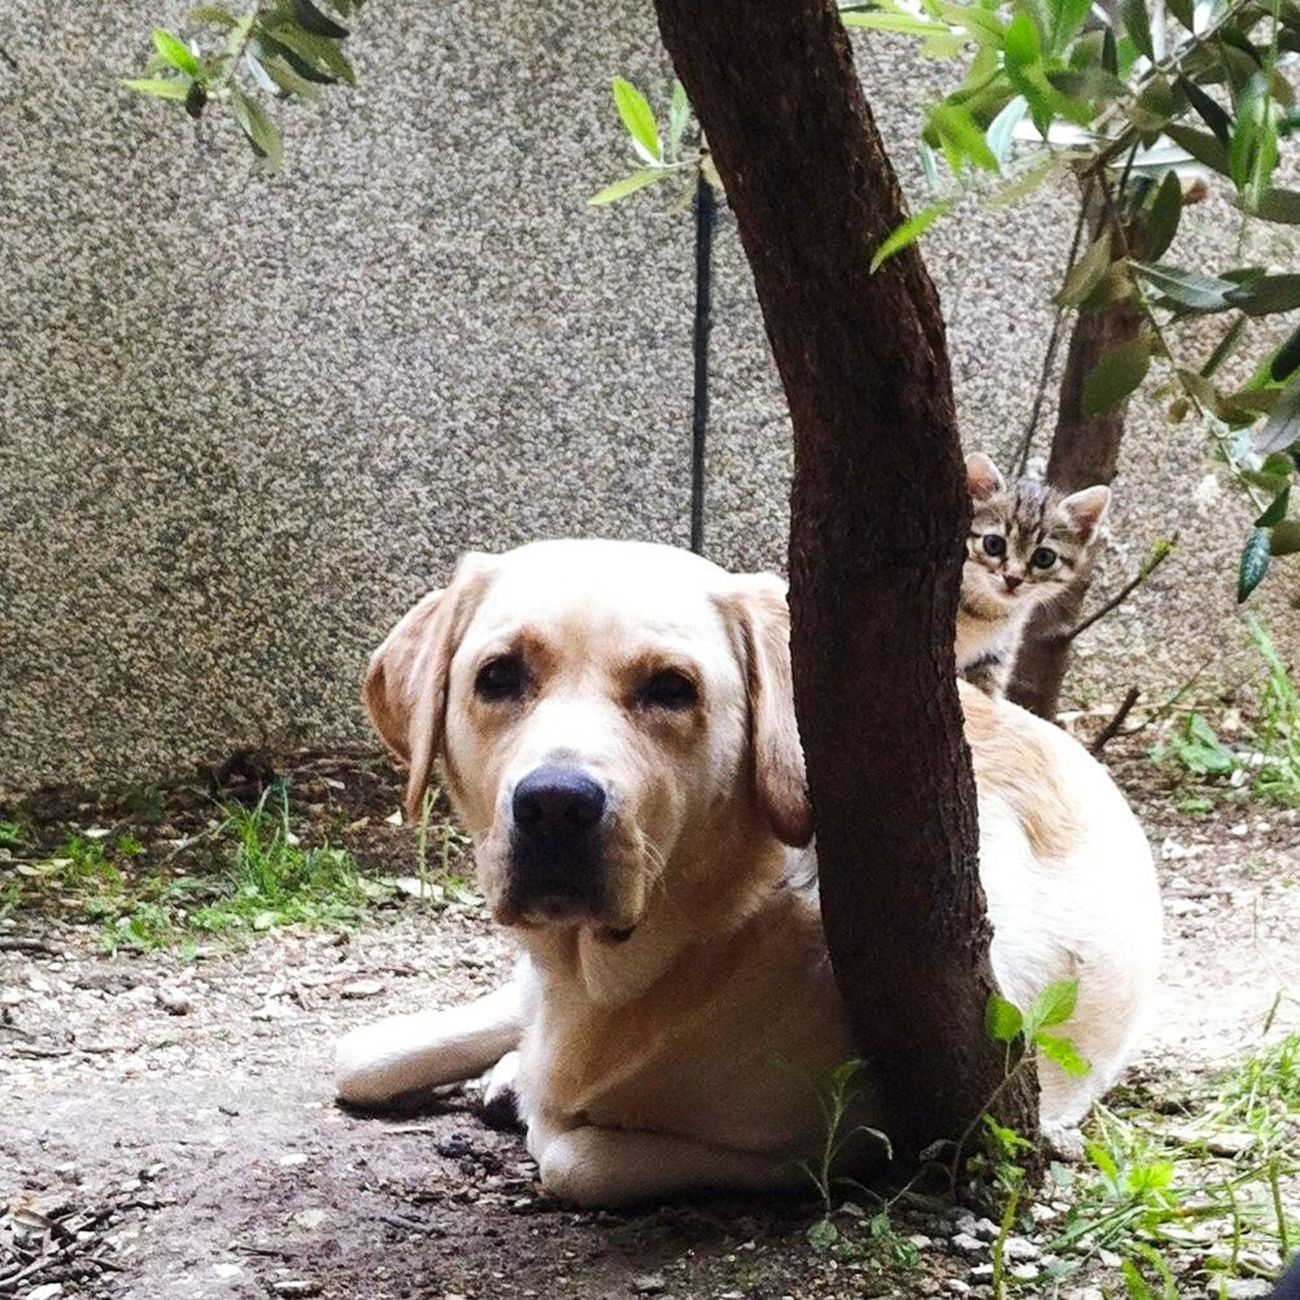 Find The Cat Dog And Cat Labrador Cats Friendship Cat And Dog Animal Love Love Kitten Cute Pets Cute Animals Right Moment Keeping Watch Best Friends